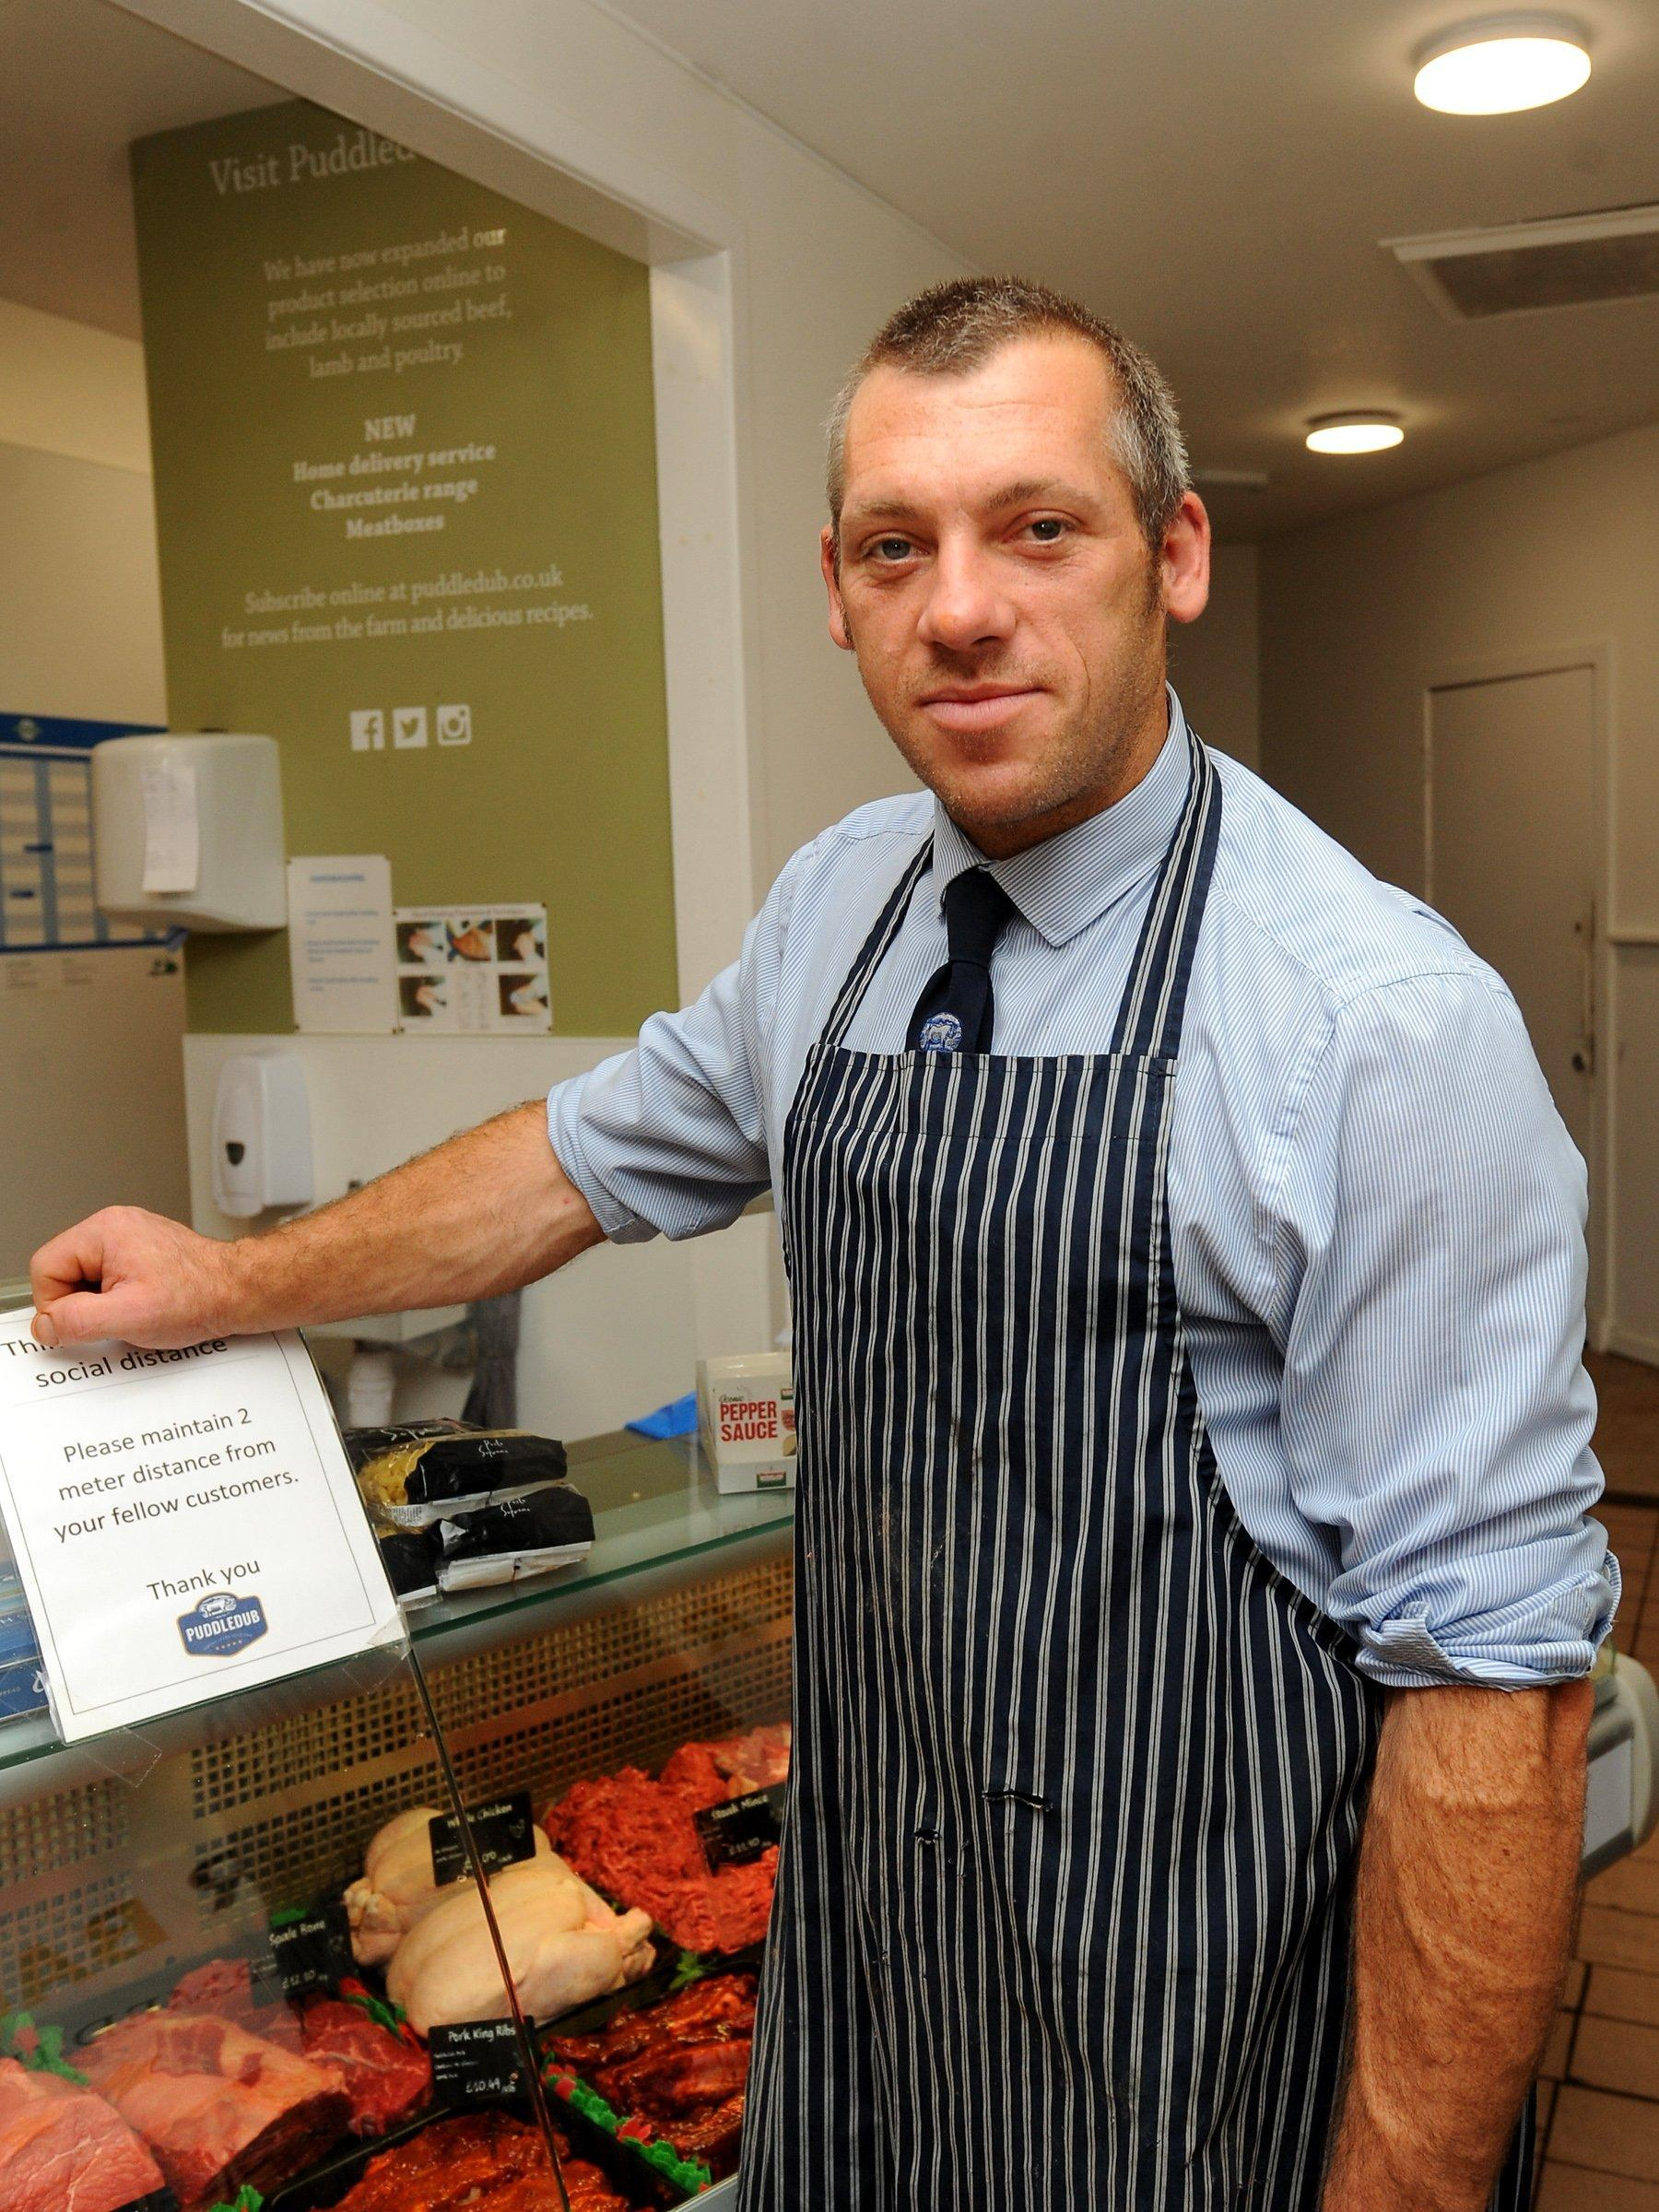 Puddledub signs up for ShopAppy's Kirkcaldy initiative